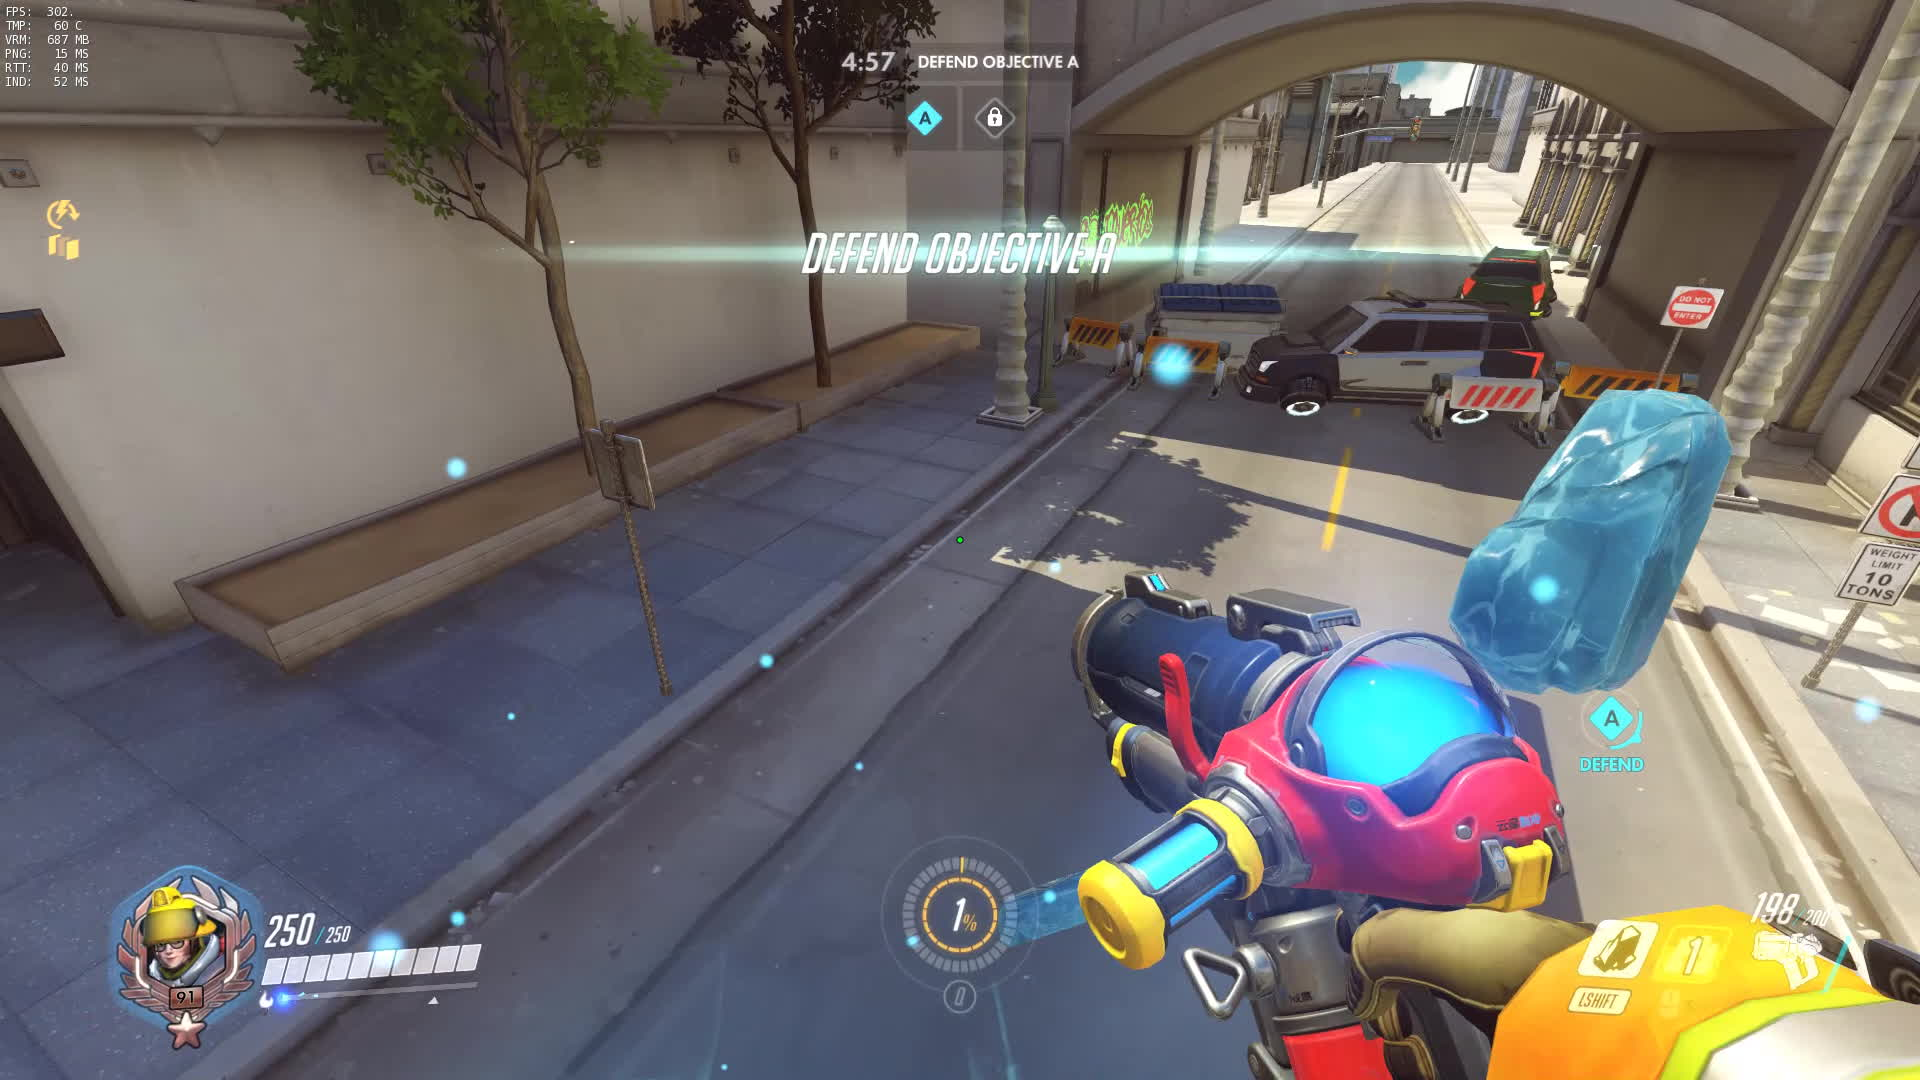 competitiveoverwatch, How? GIFs